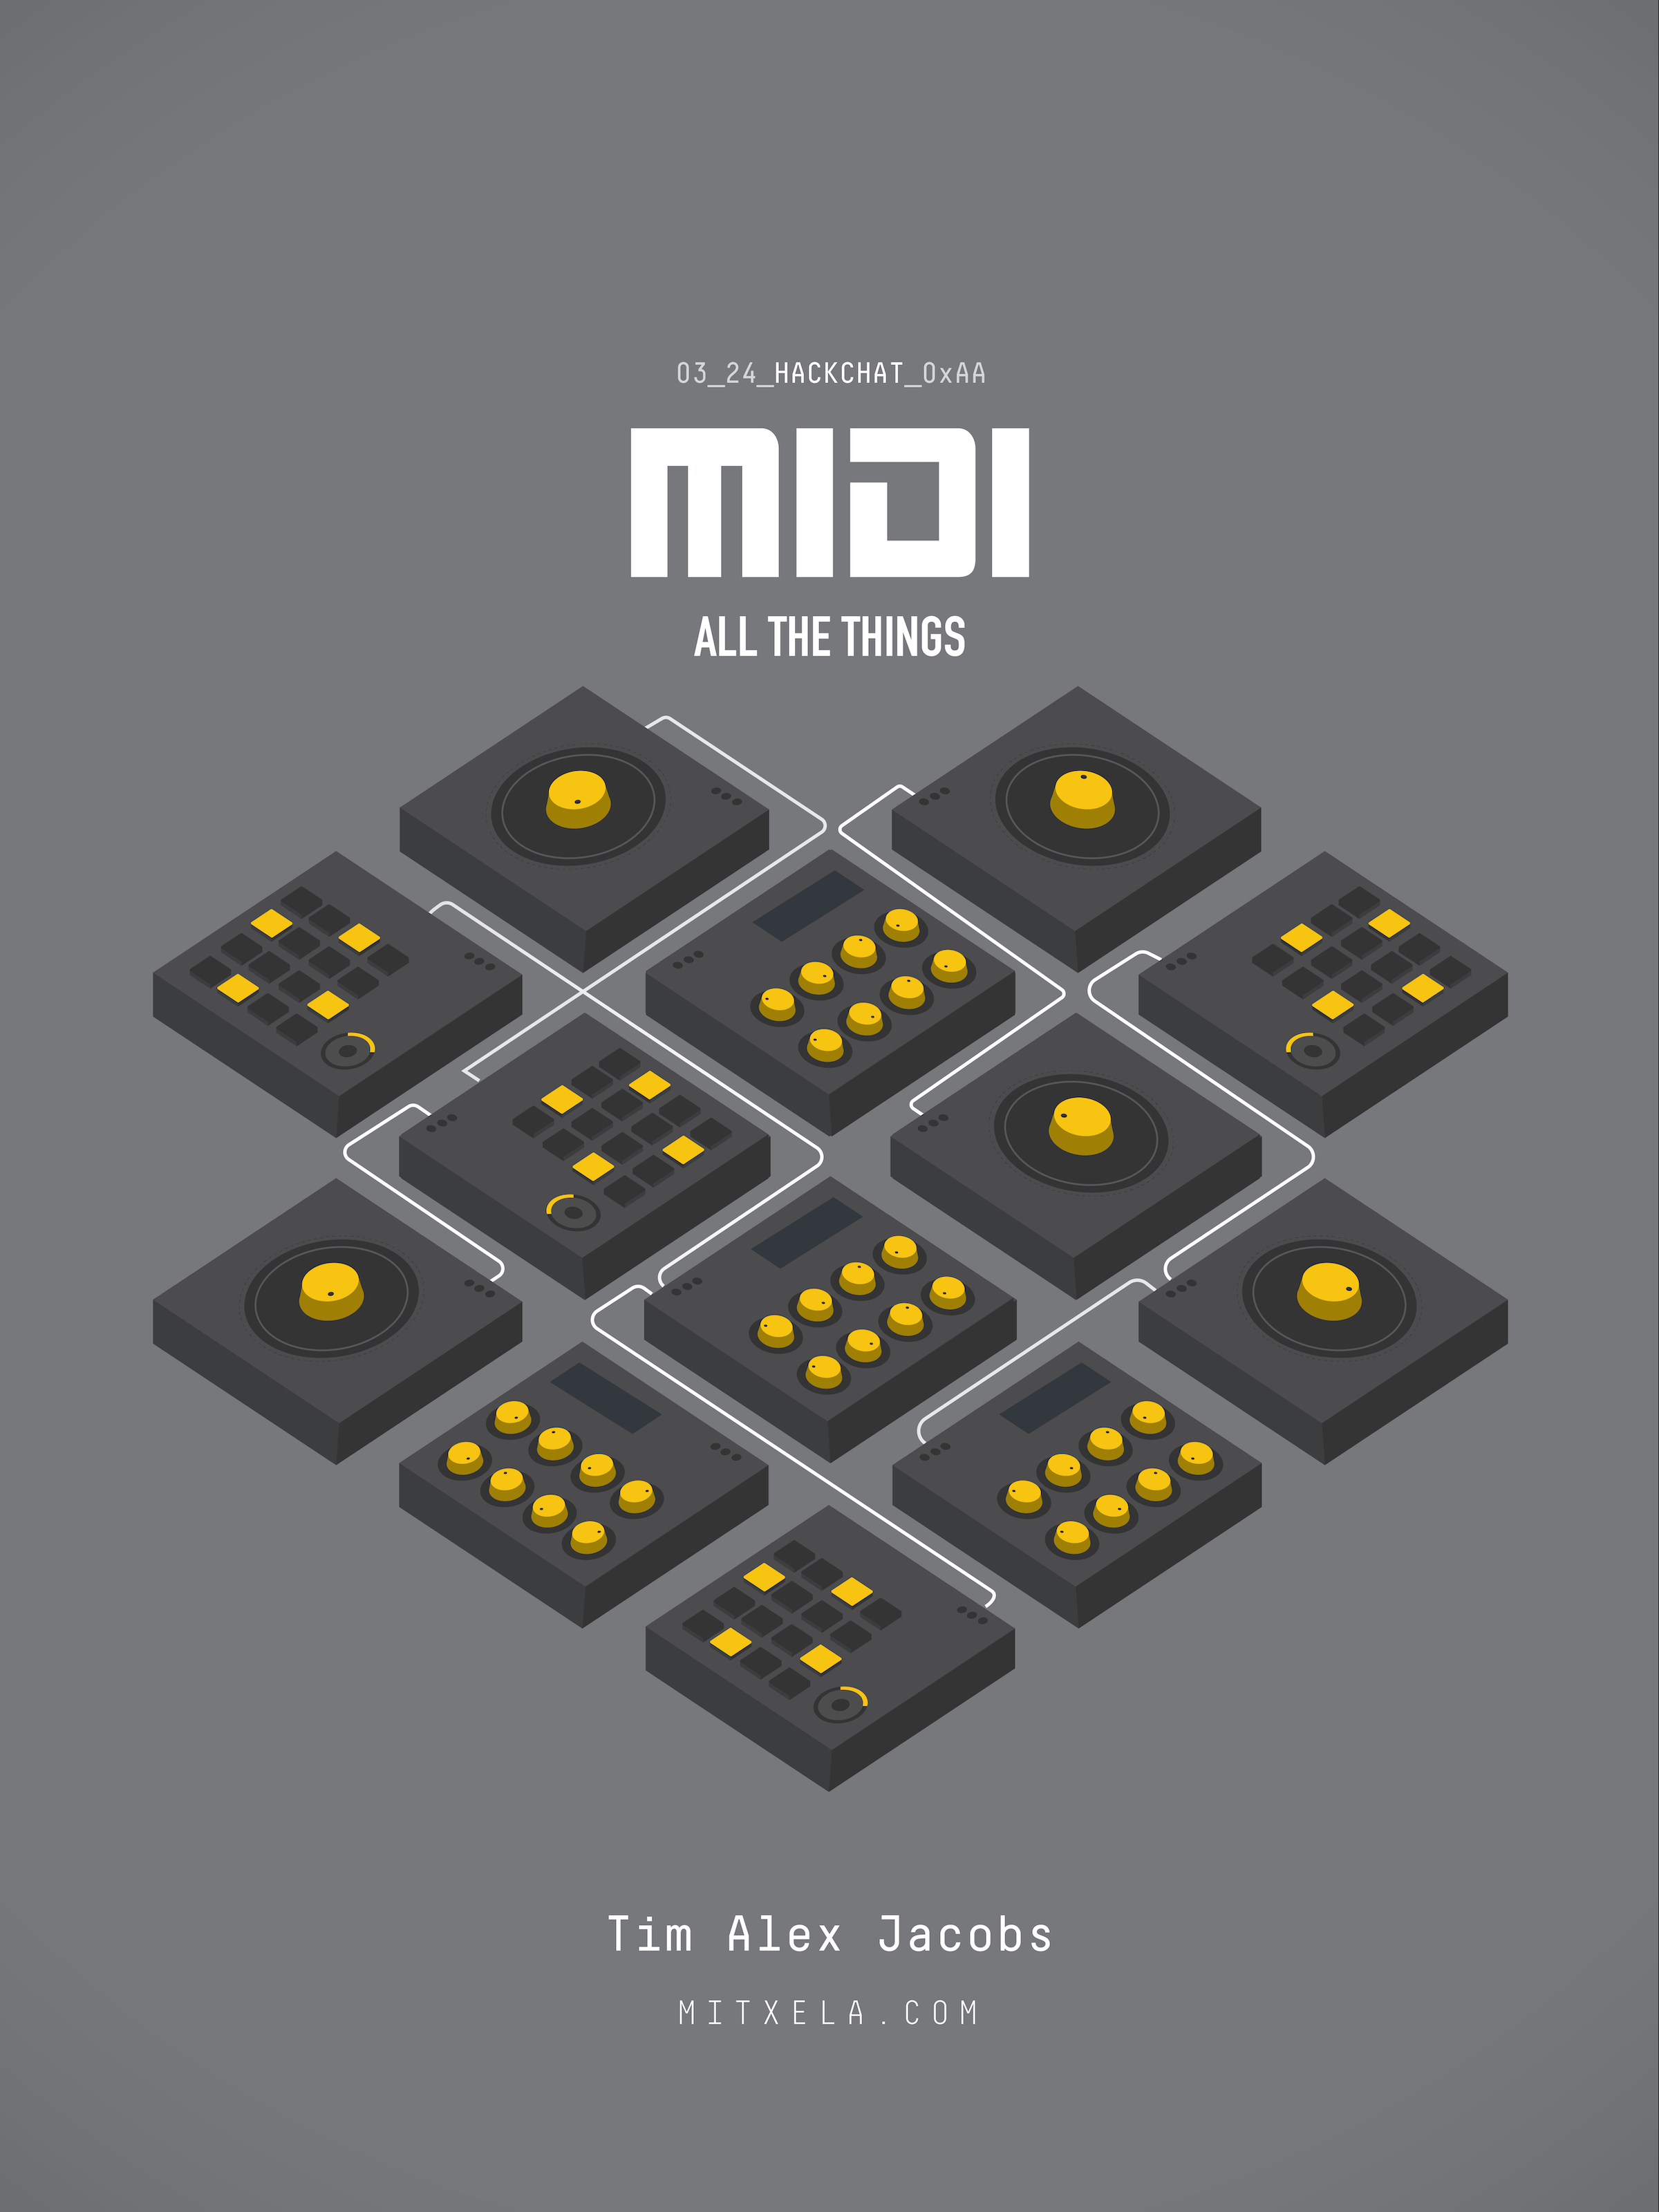 Free MIDI All The Things Hack Chat